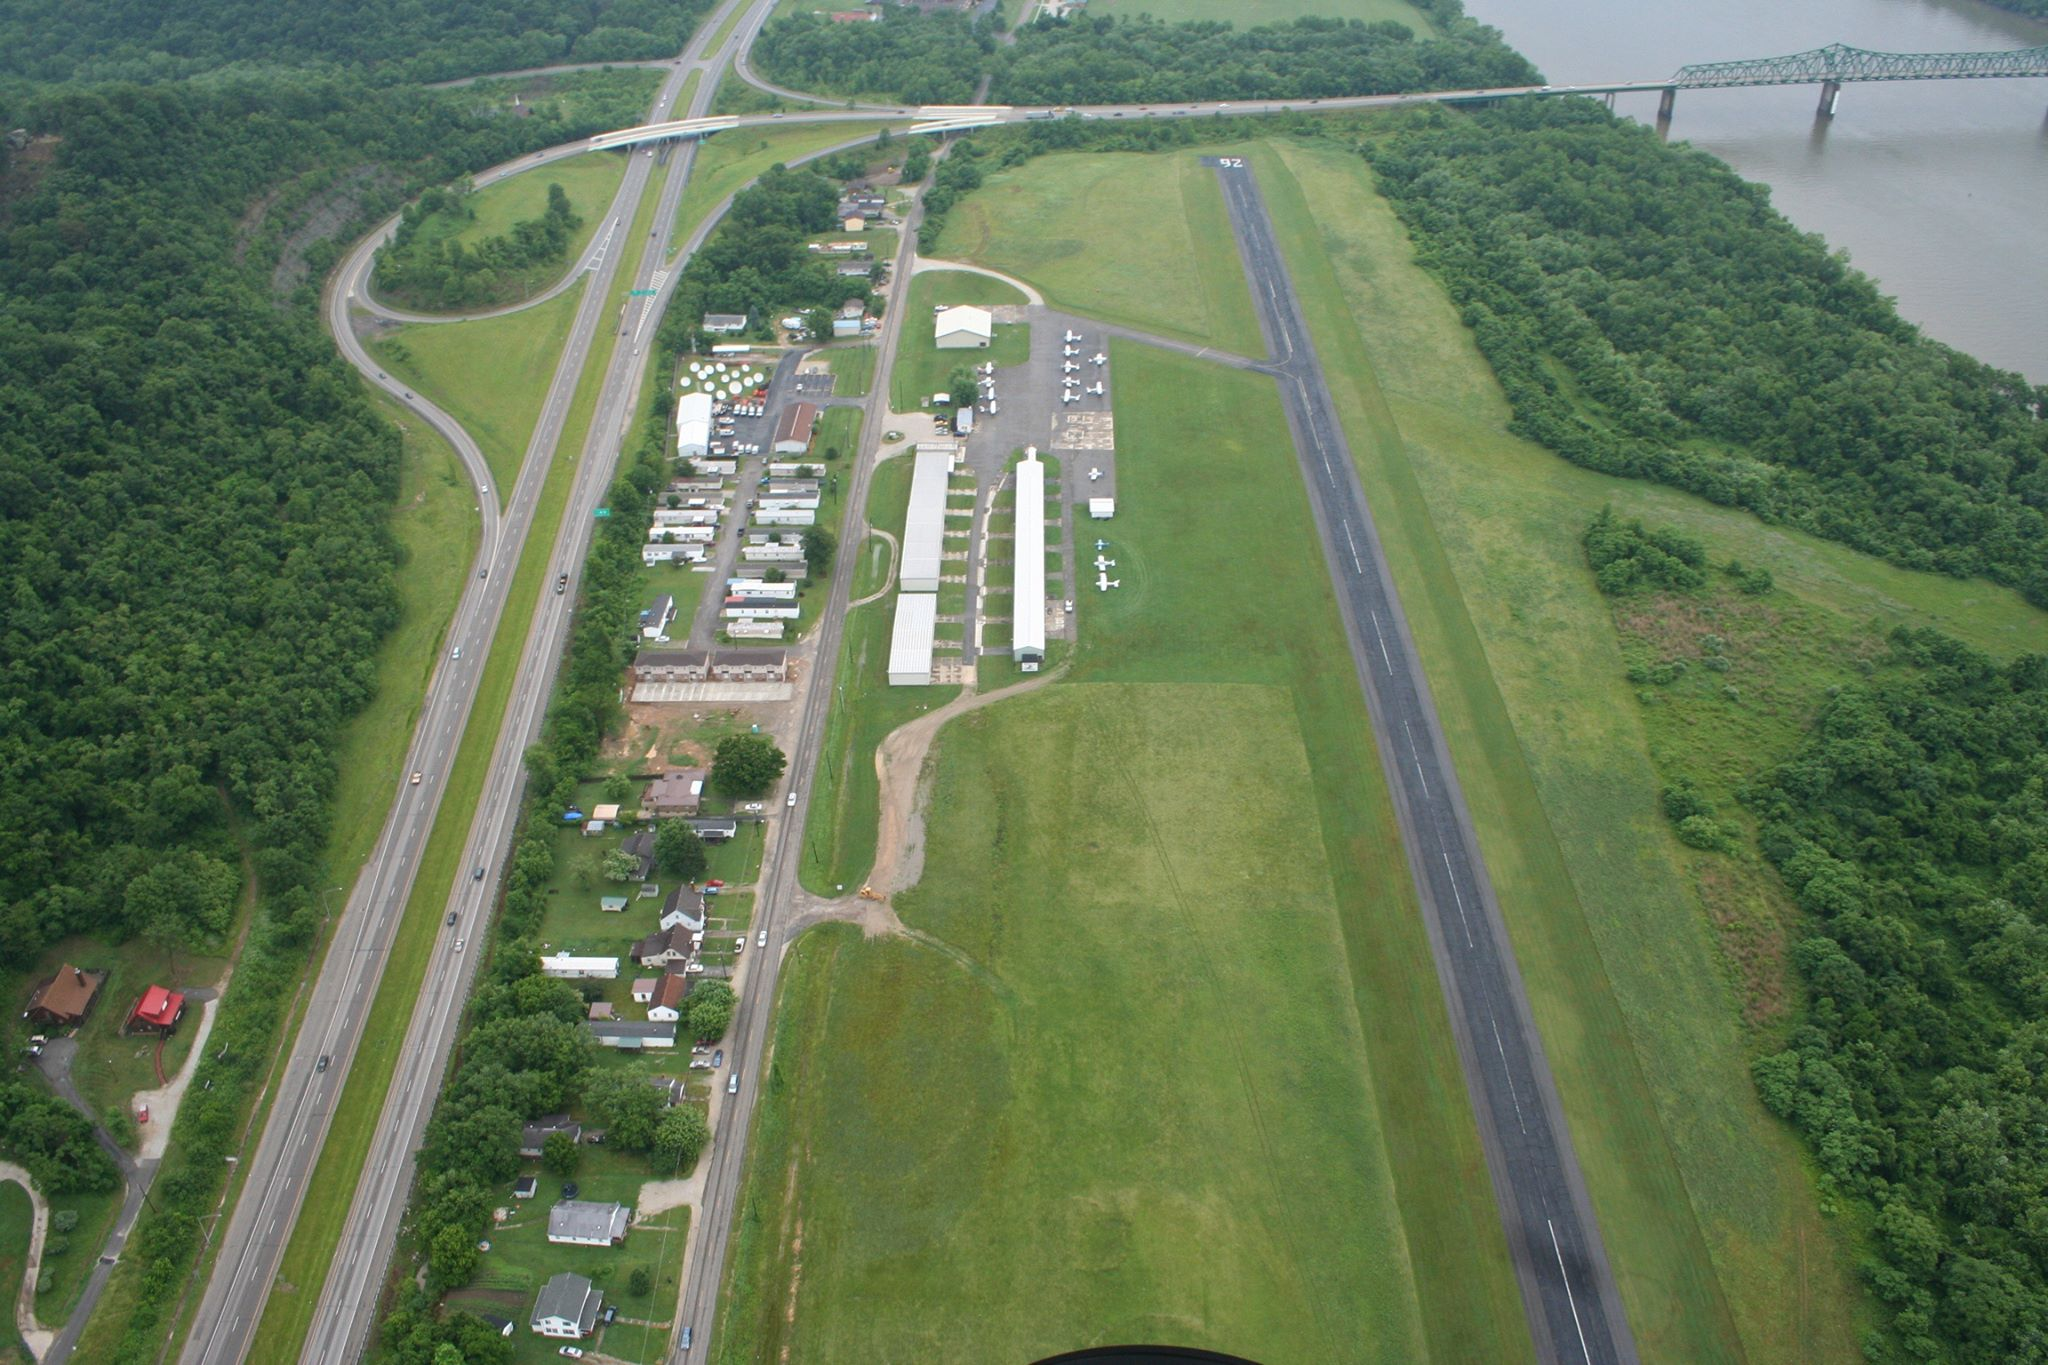 In 1997-1998 after many requests for improvements from the County; the Tri-State Pilots Association, led by Dee Callicoat of Proctorville, raised funds and erected 9 new metal hangers each capable of housing multiple planes.